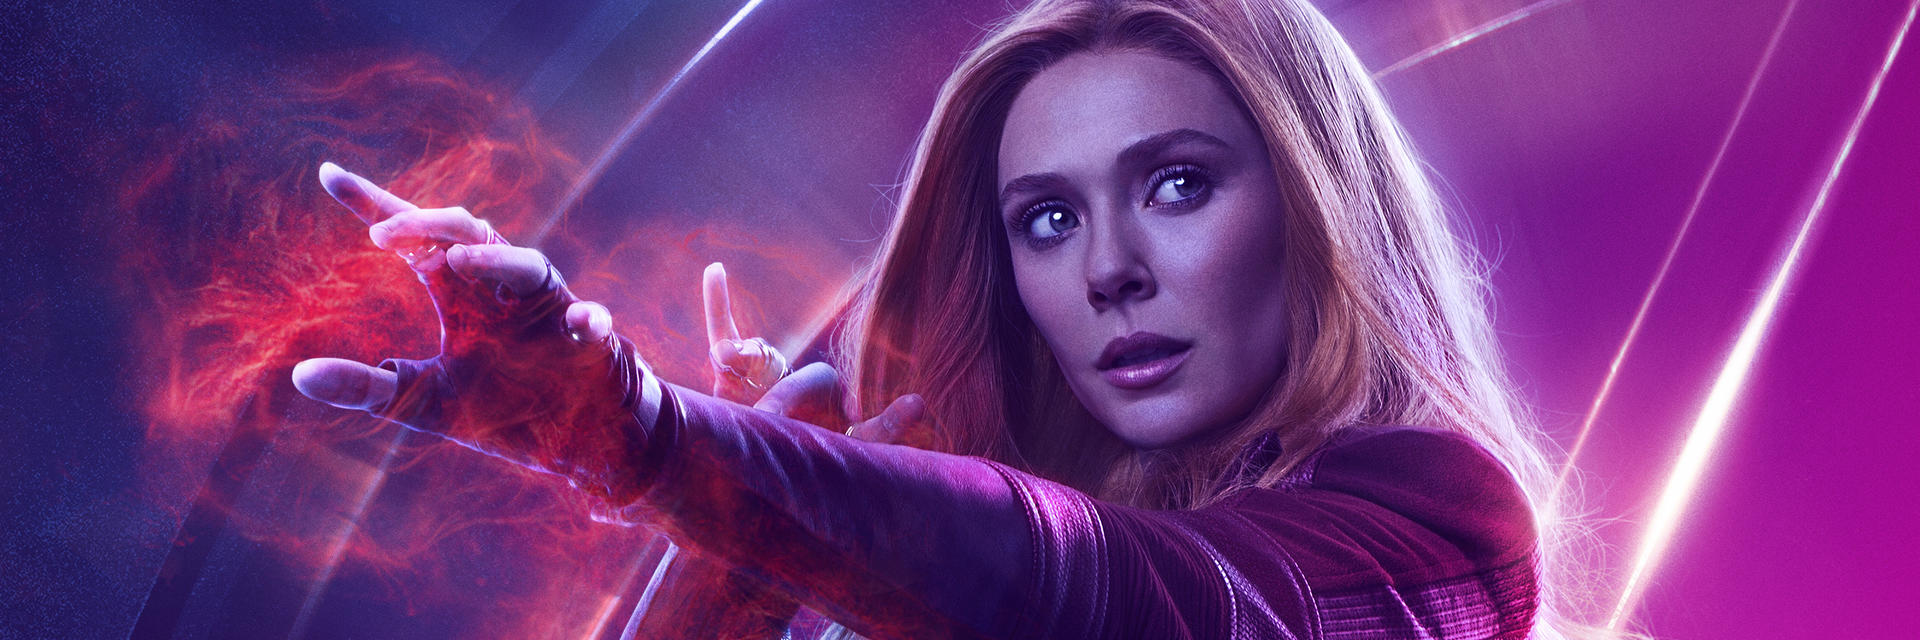 Scarlet Witch (Wanda Maximoff) | Characters | Marvel